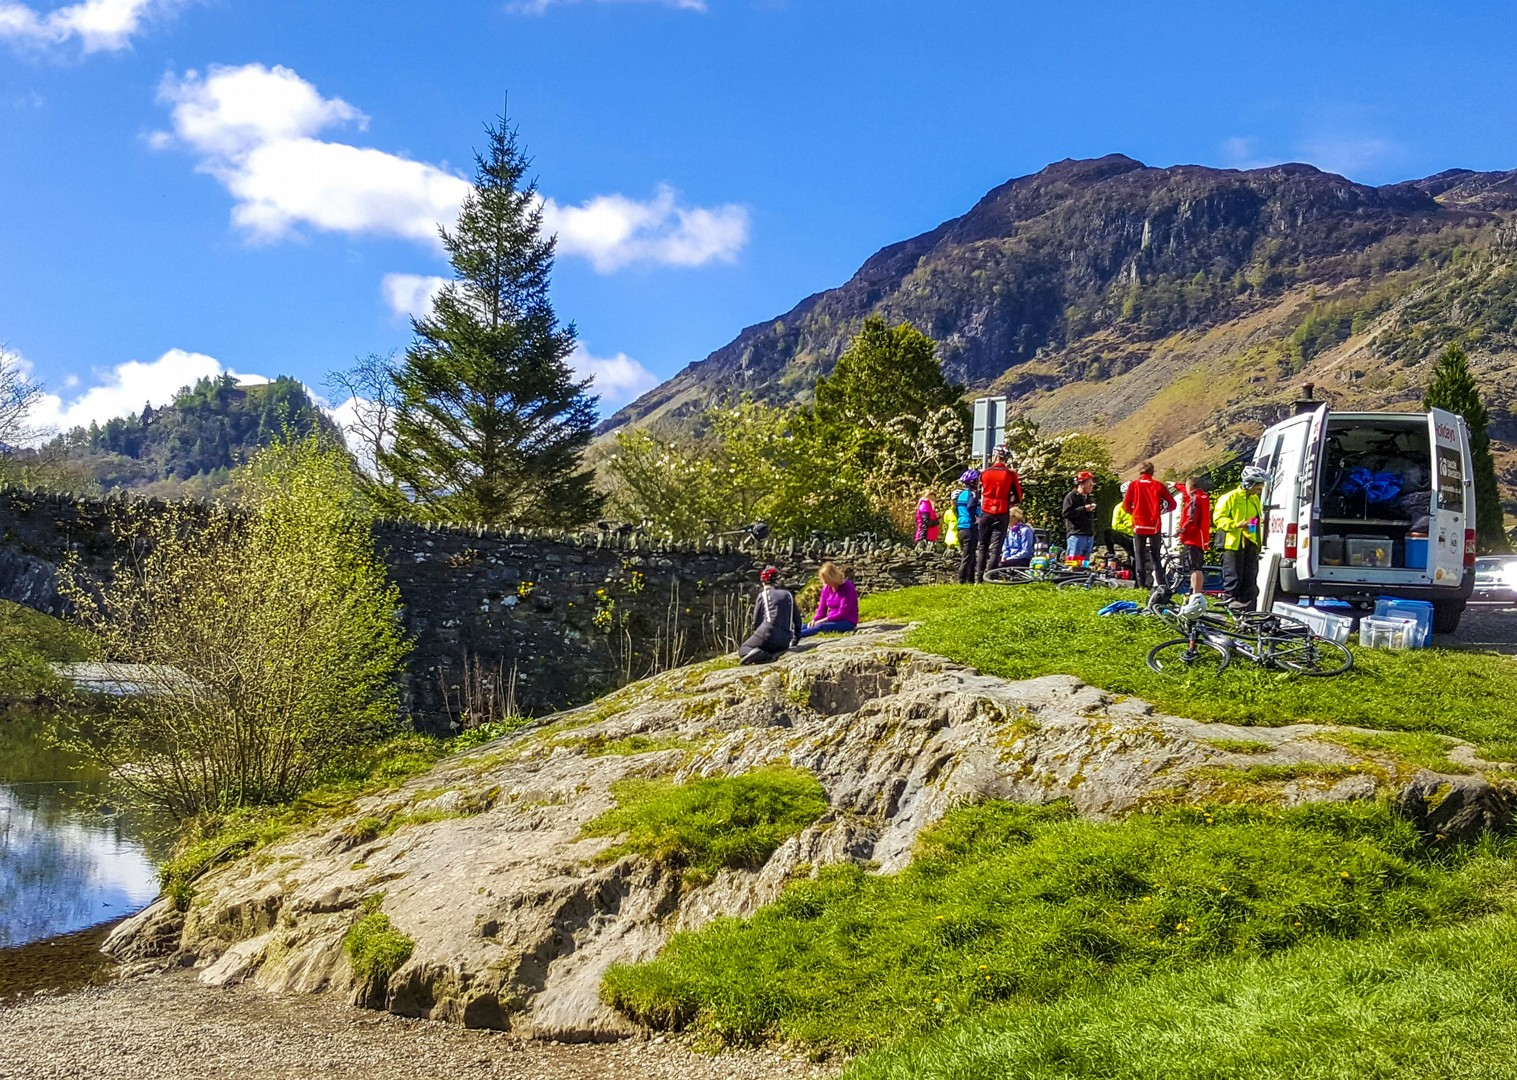 20170423_103512-2.jpg - UK - Lake District - Derwent Water - Guided Leisure Cycling Holiday - Leisure Cycling